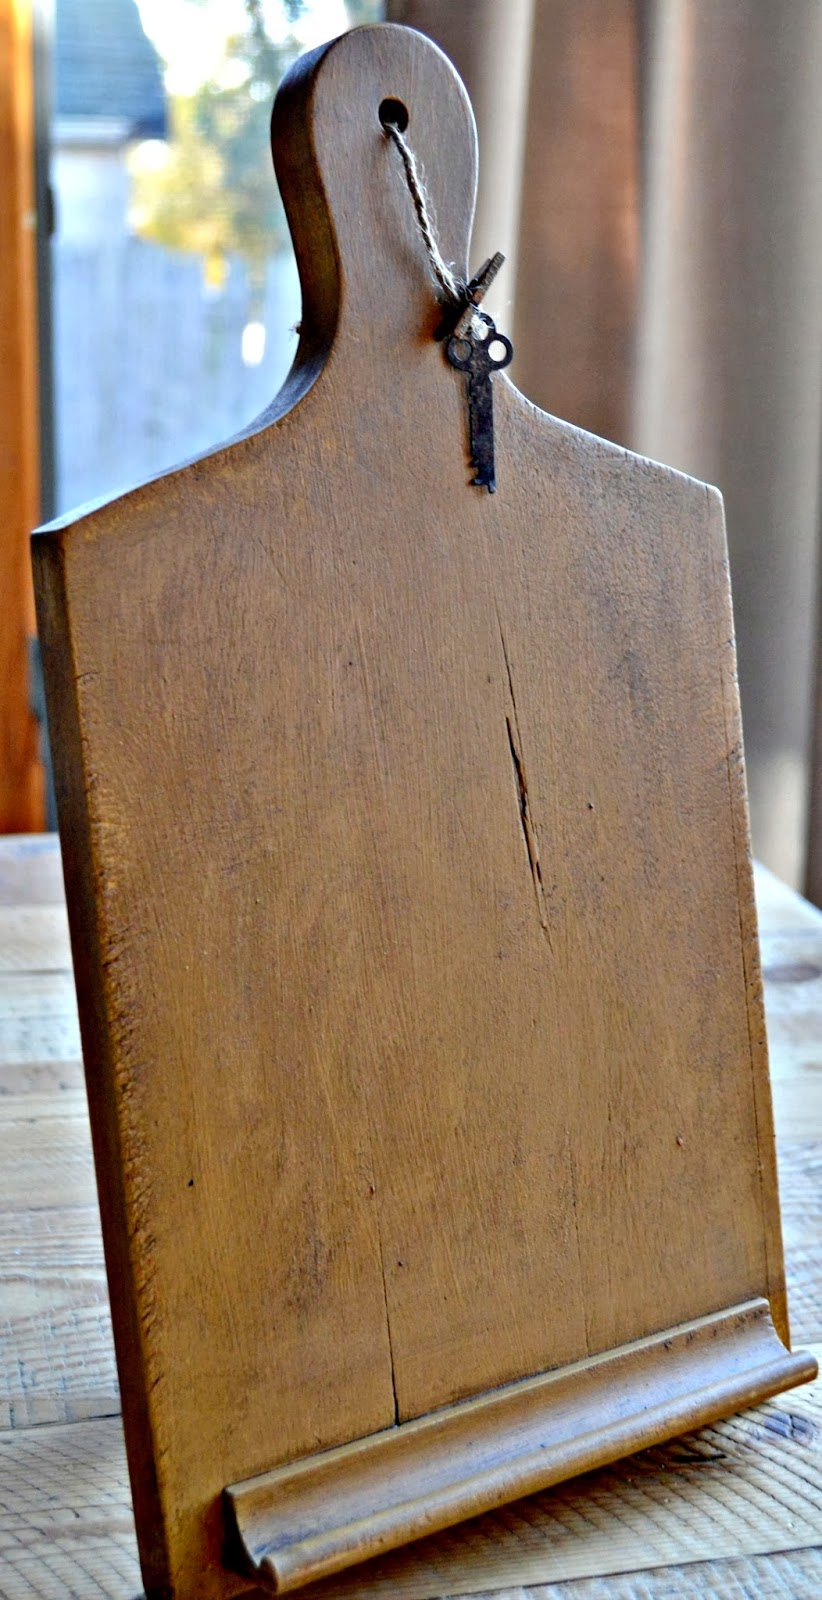 homeroad-ipad-stand-with-vintage-trowel-stand